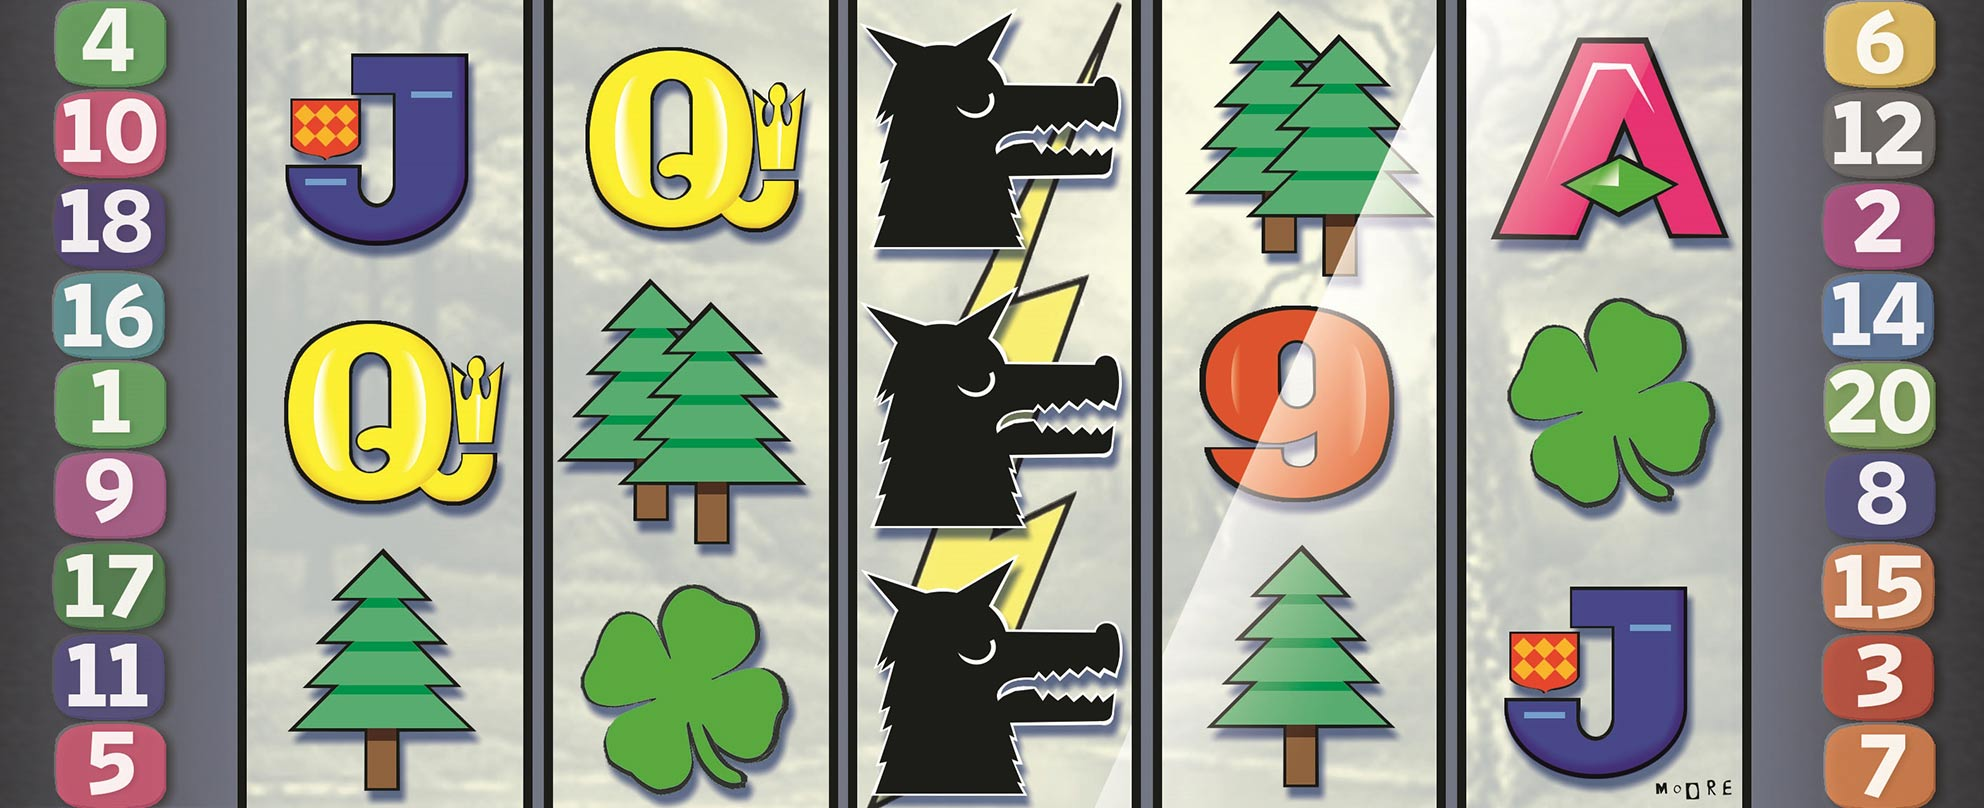 Illustration showing poker machine symbols – trees, four-leafed clovers, Q, J, 9 – and three black dog symbols, lining up in a column.